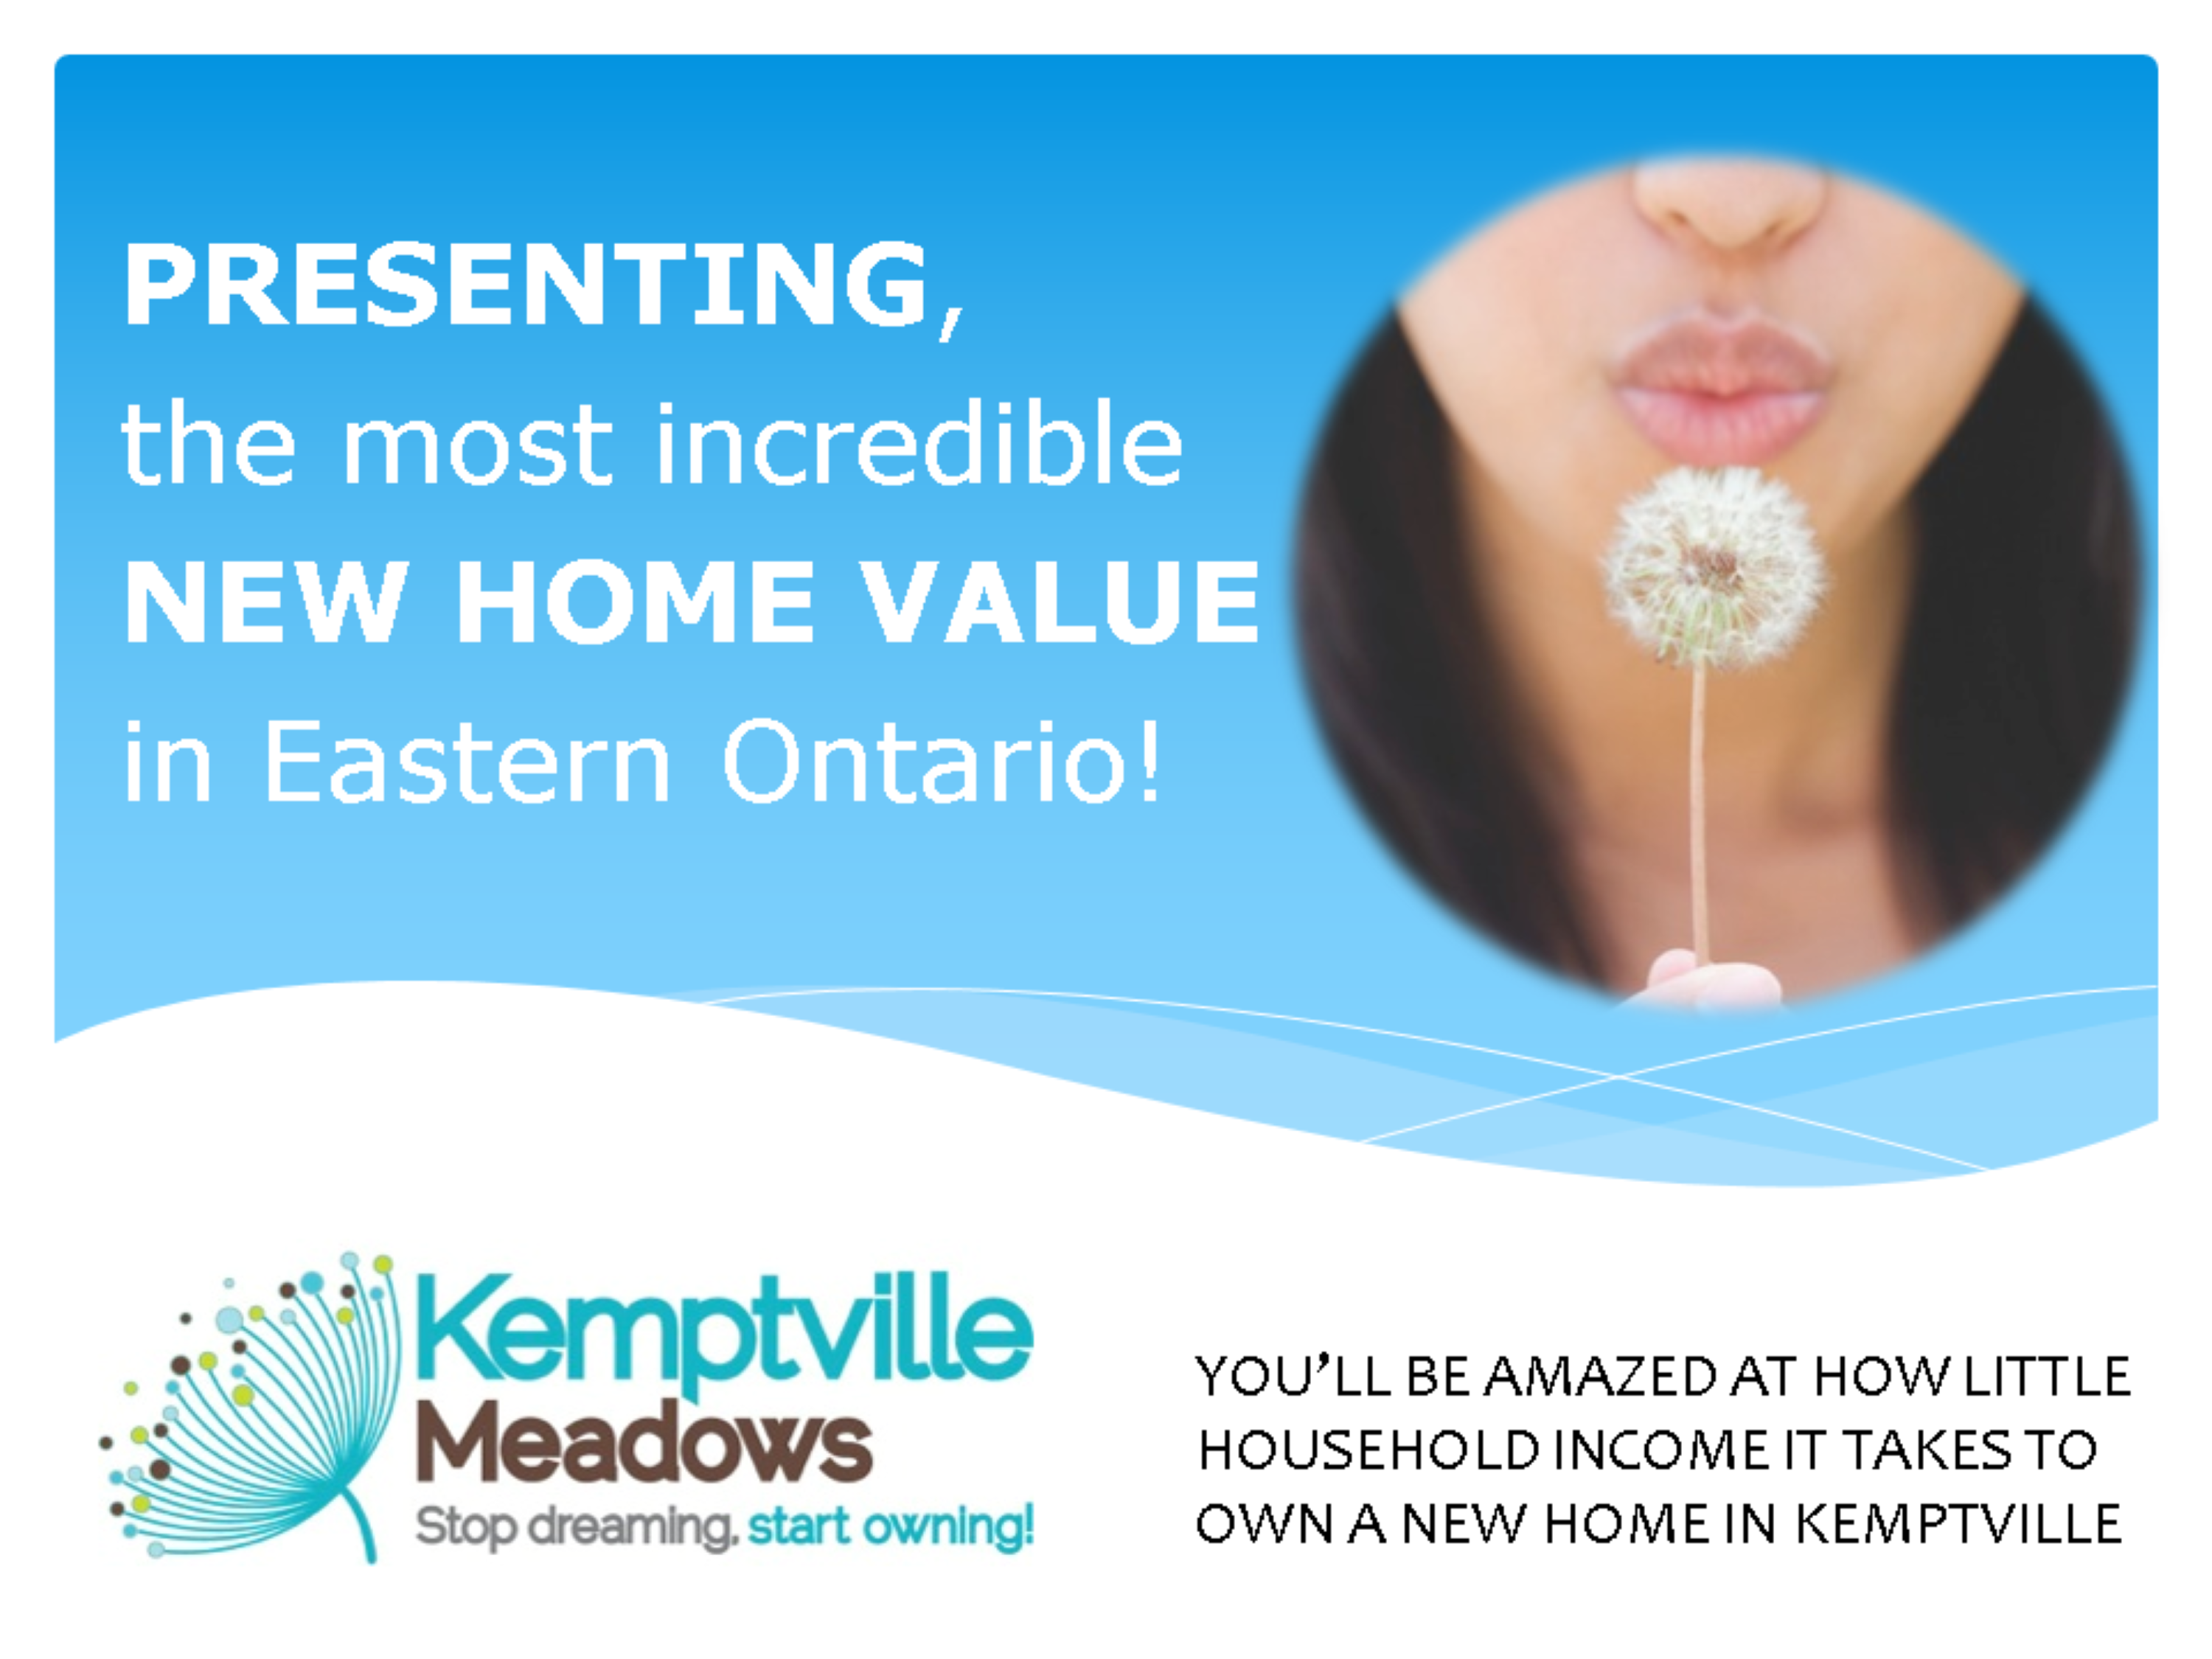 Kemptville Meadows